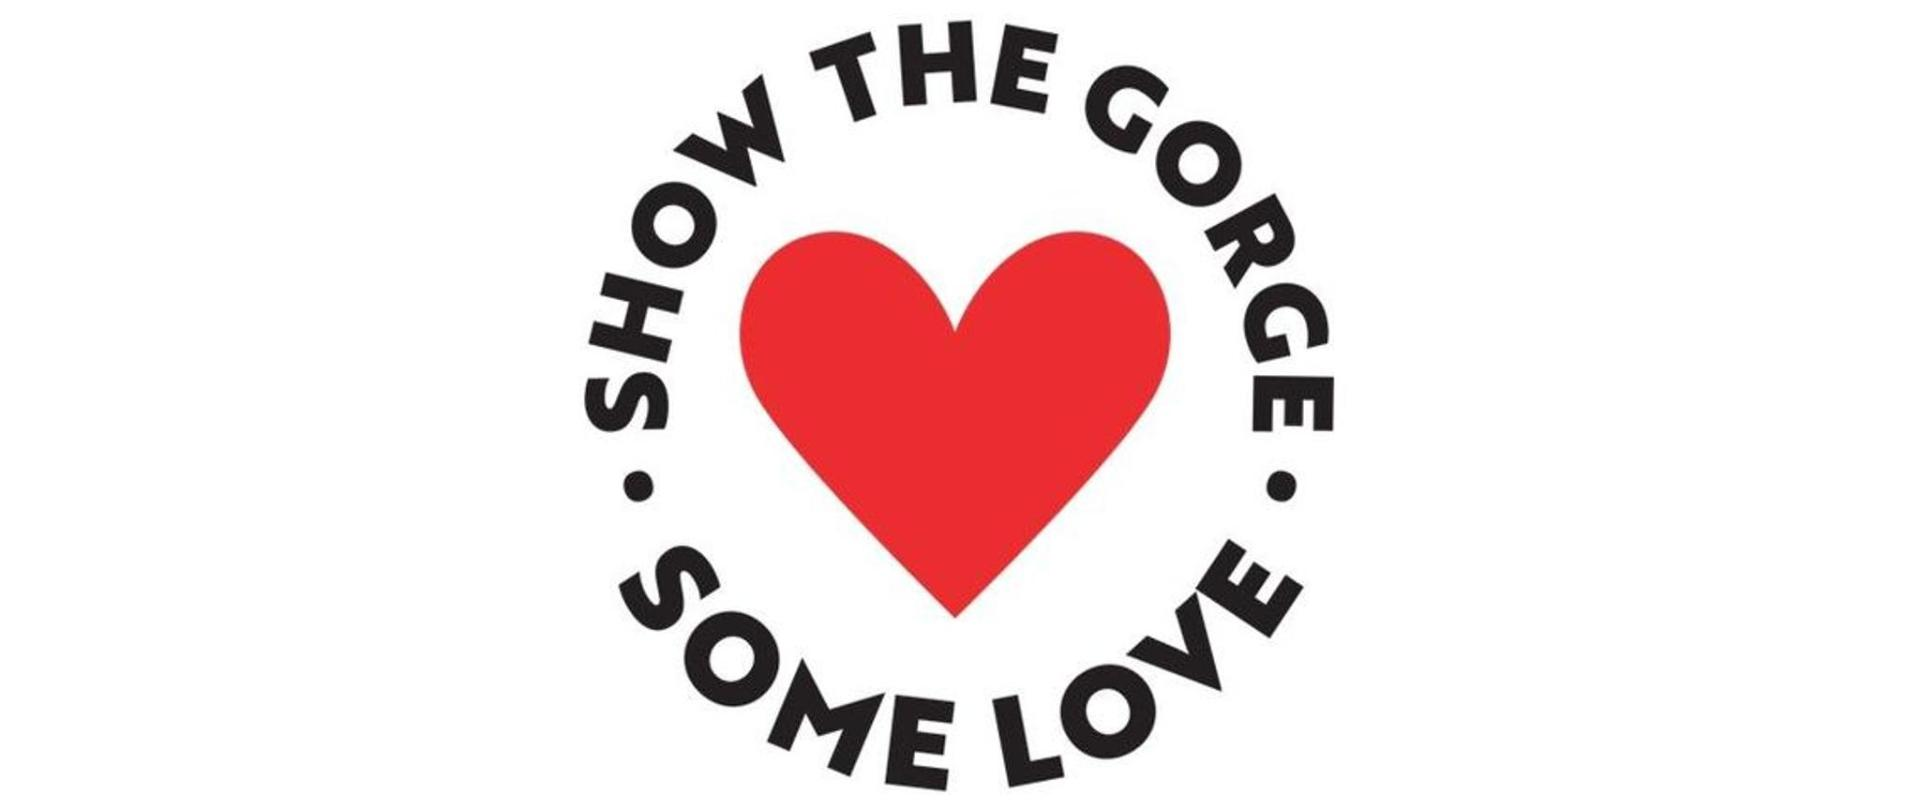 show-the-gorge-some-love-banner.jpg.1140x481_default.jpg